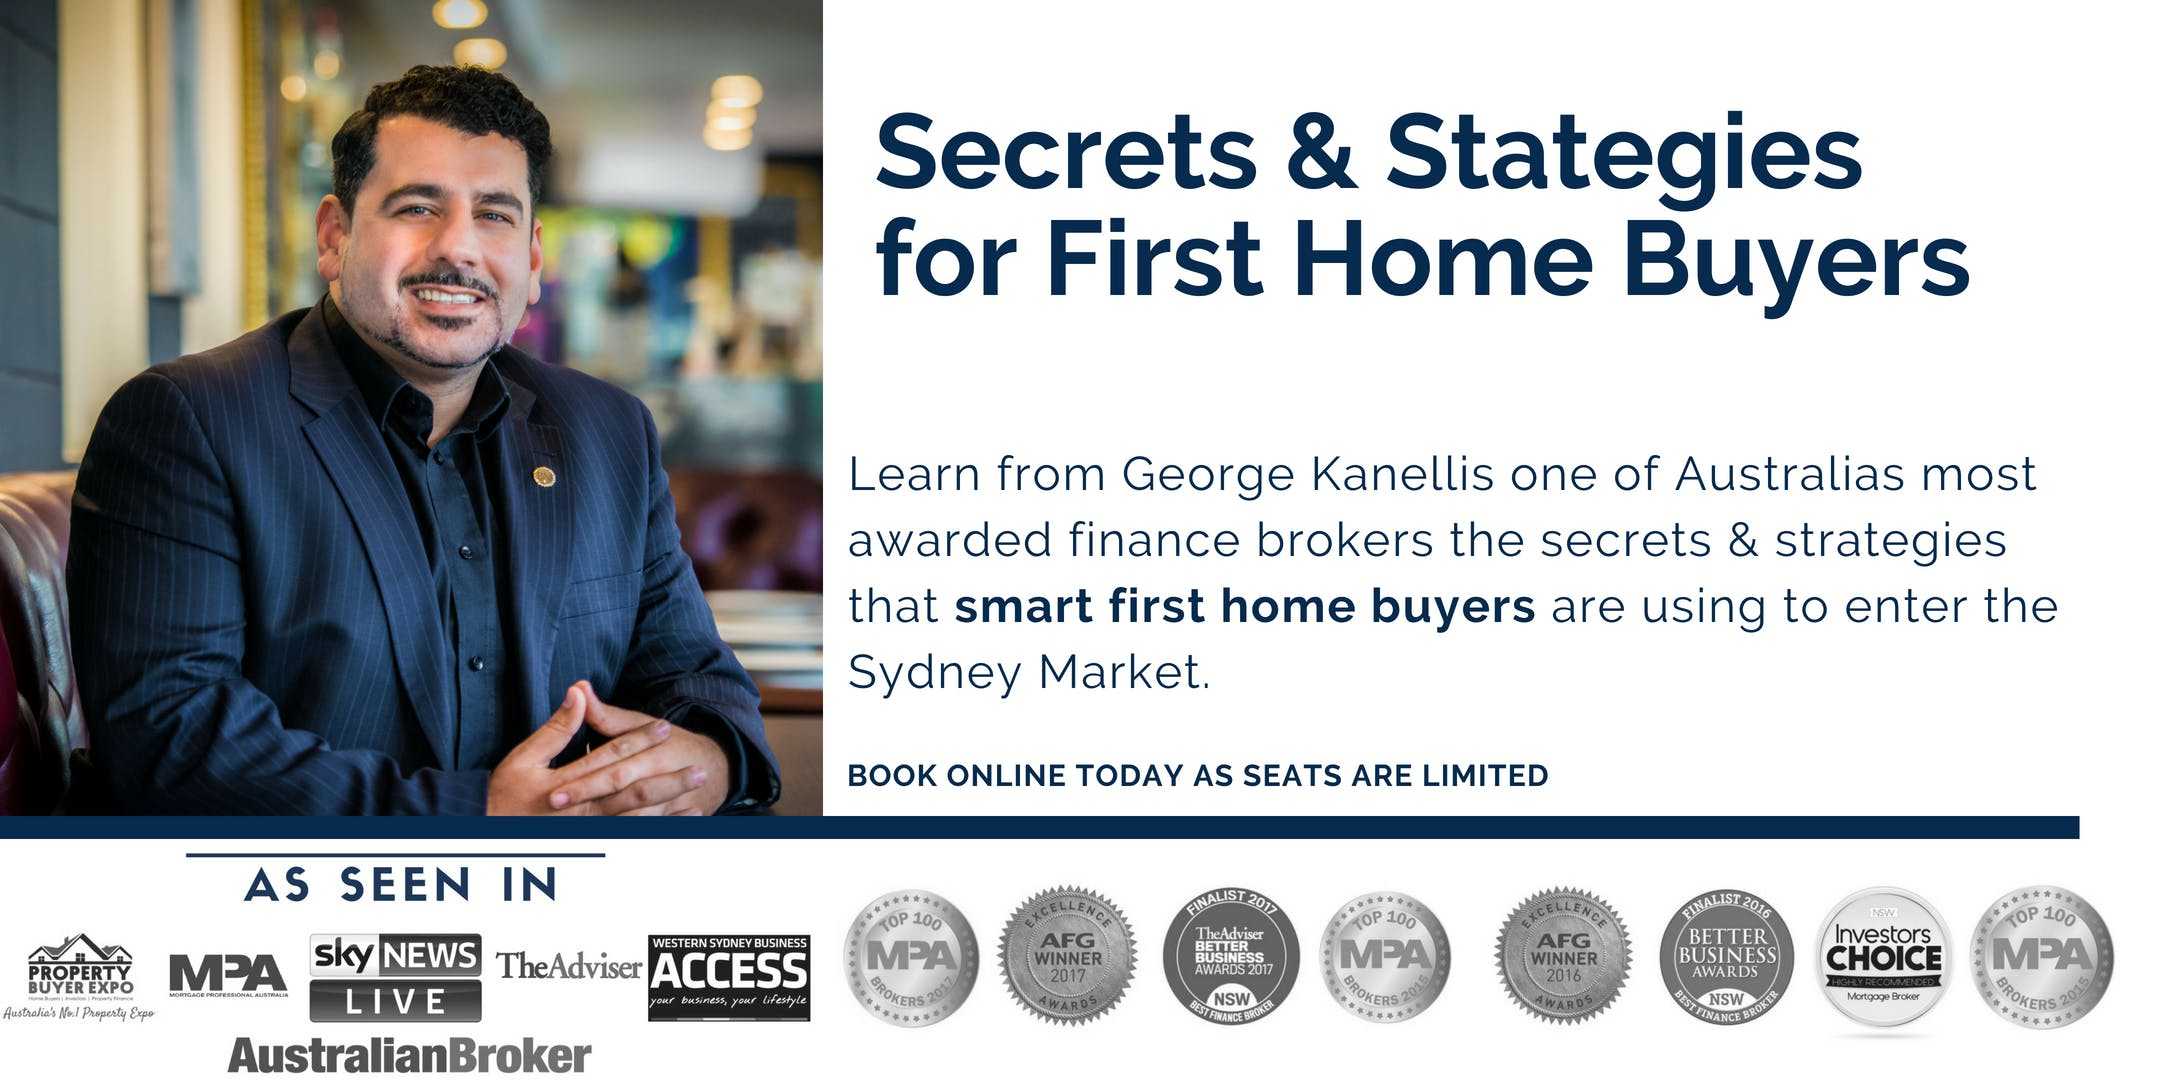 Secrets & Strategies For First Home Buyers